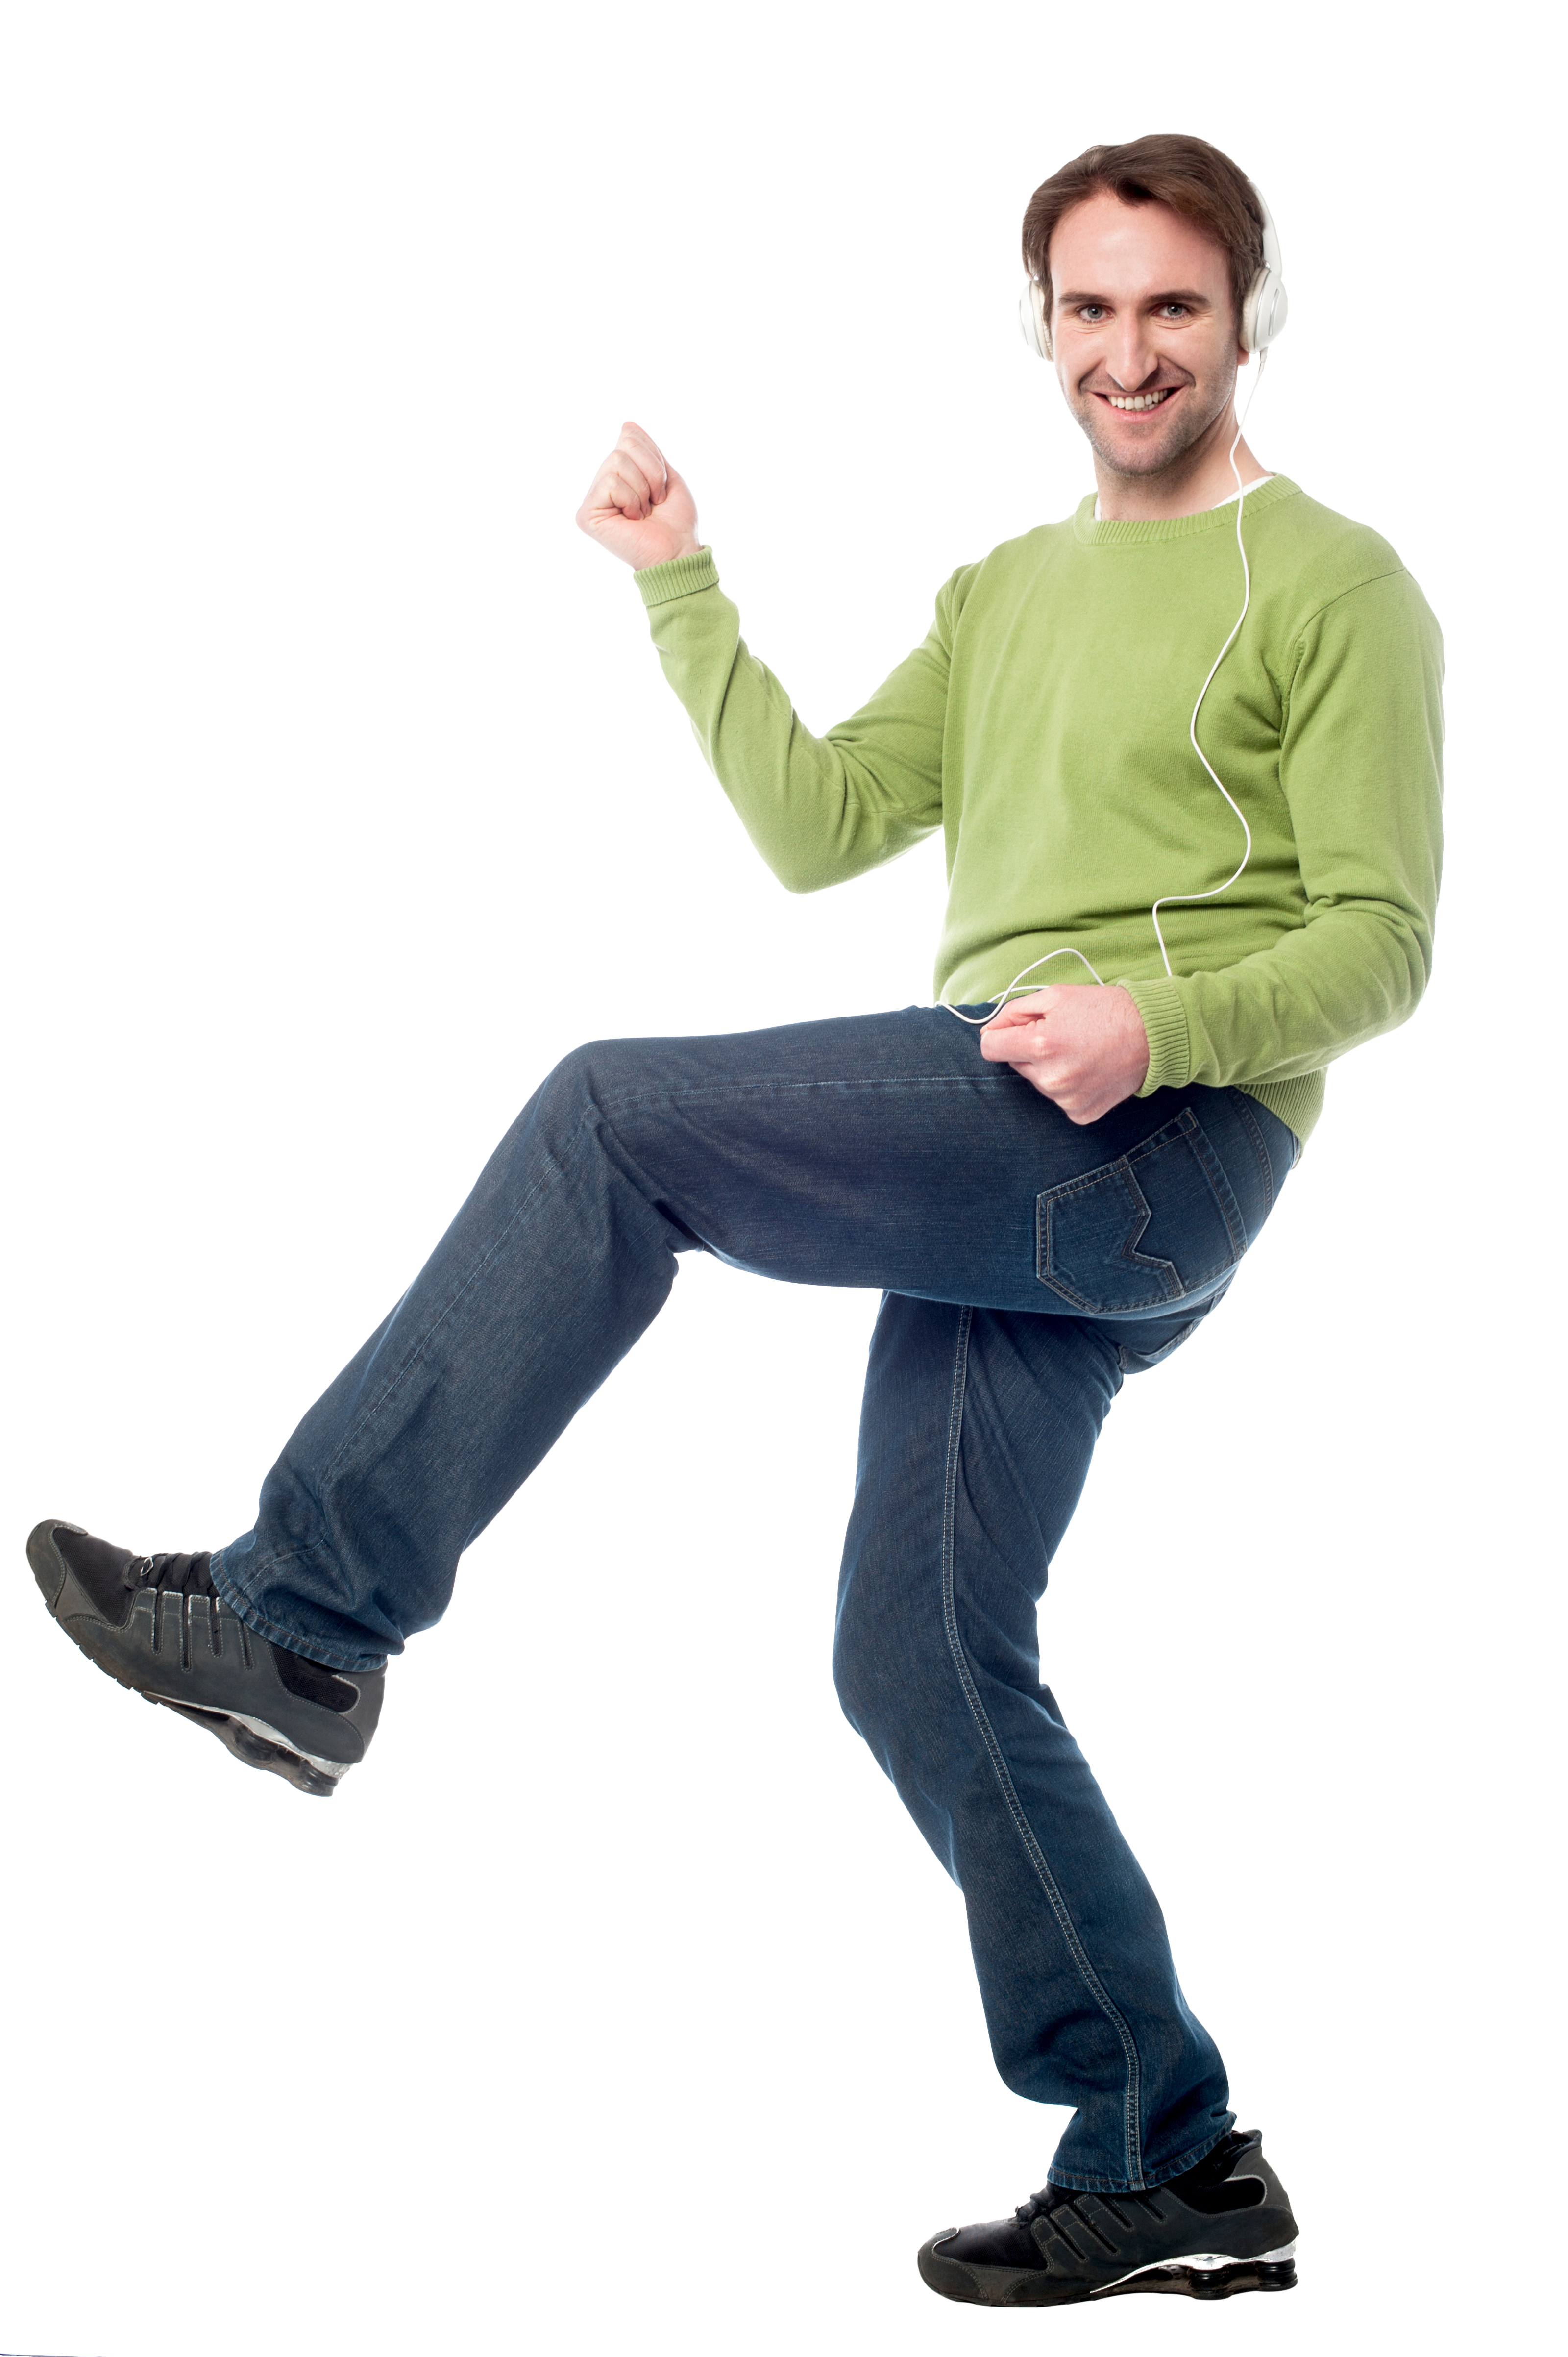 Dancing person png. Dance image purepng free